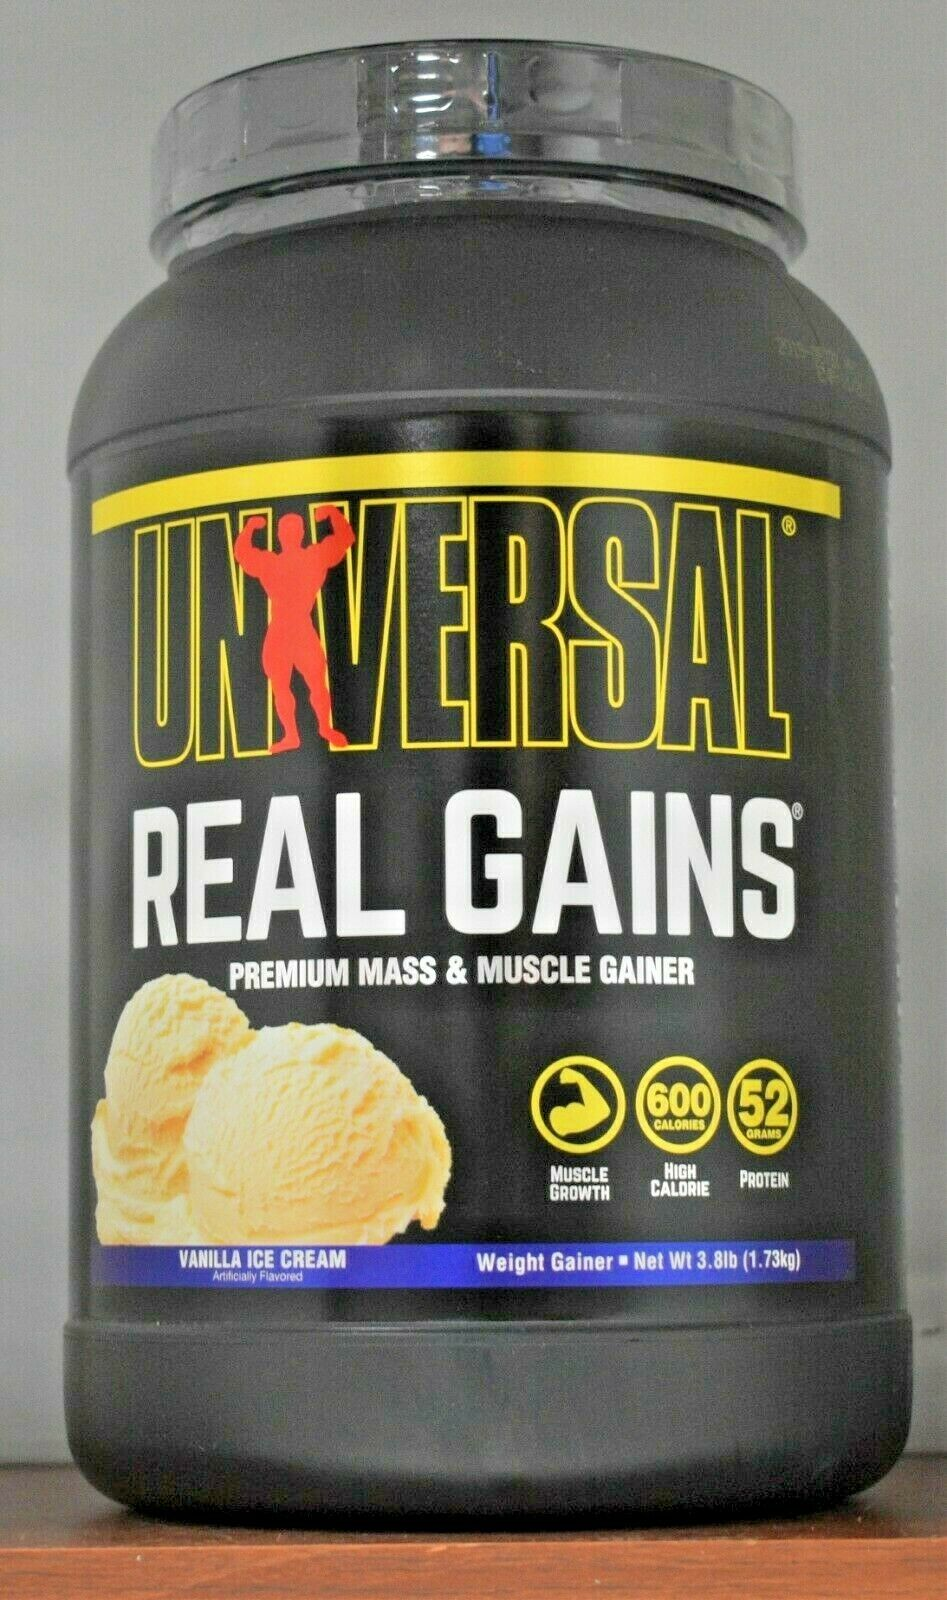 Universal Nutrition Real Gains 3.8Lb Weight Gainer 1.73kg